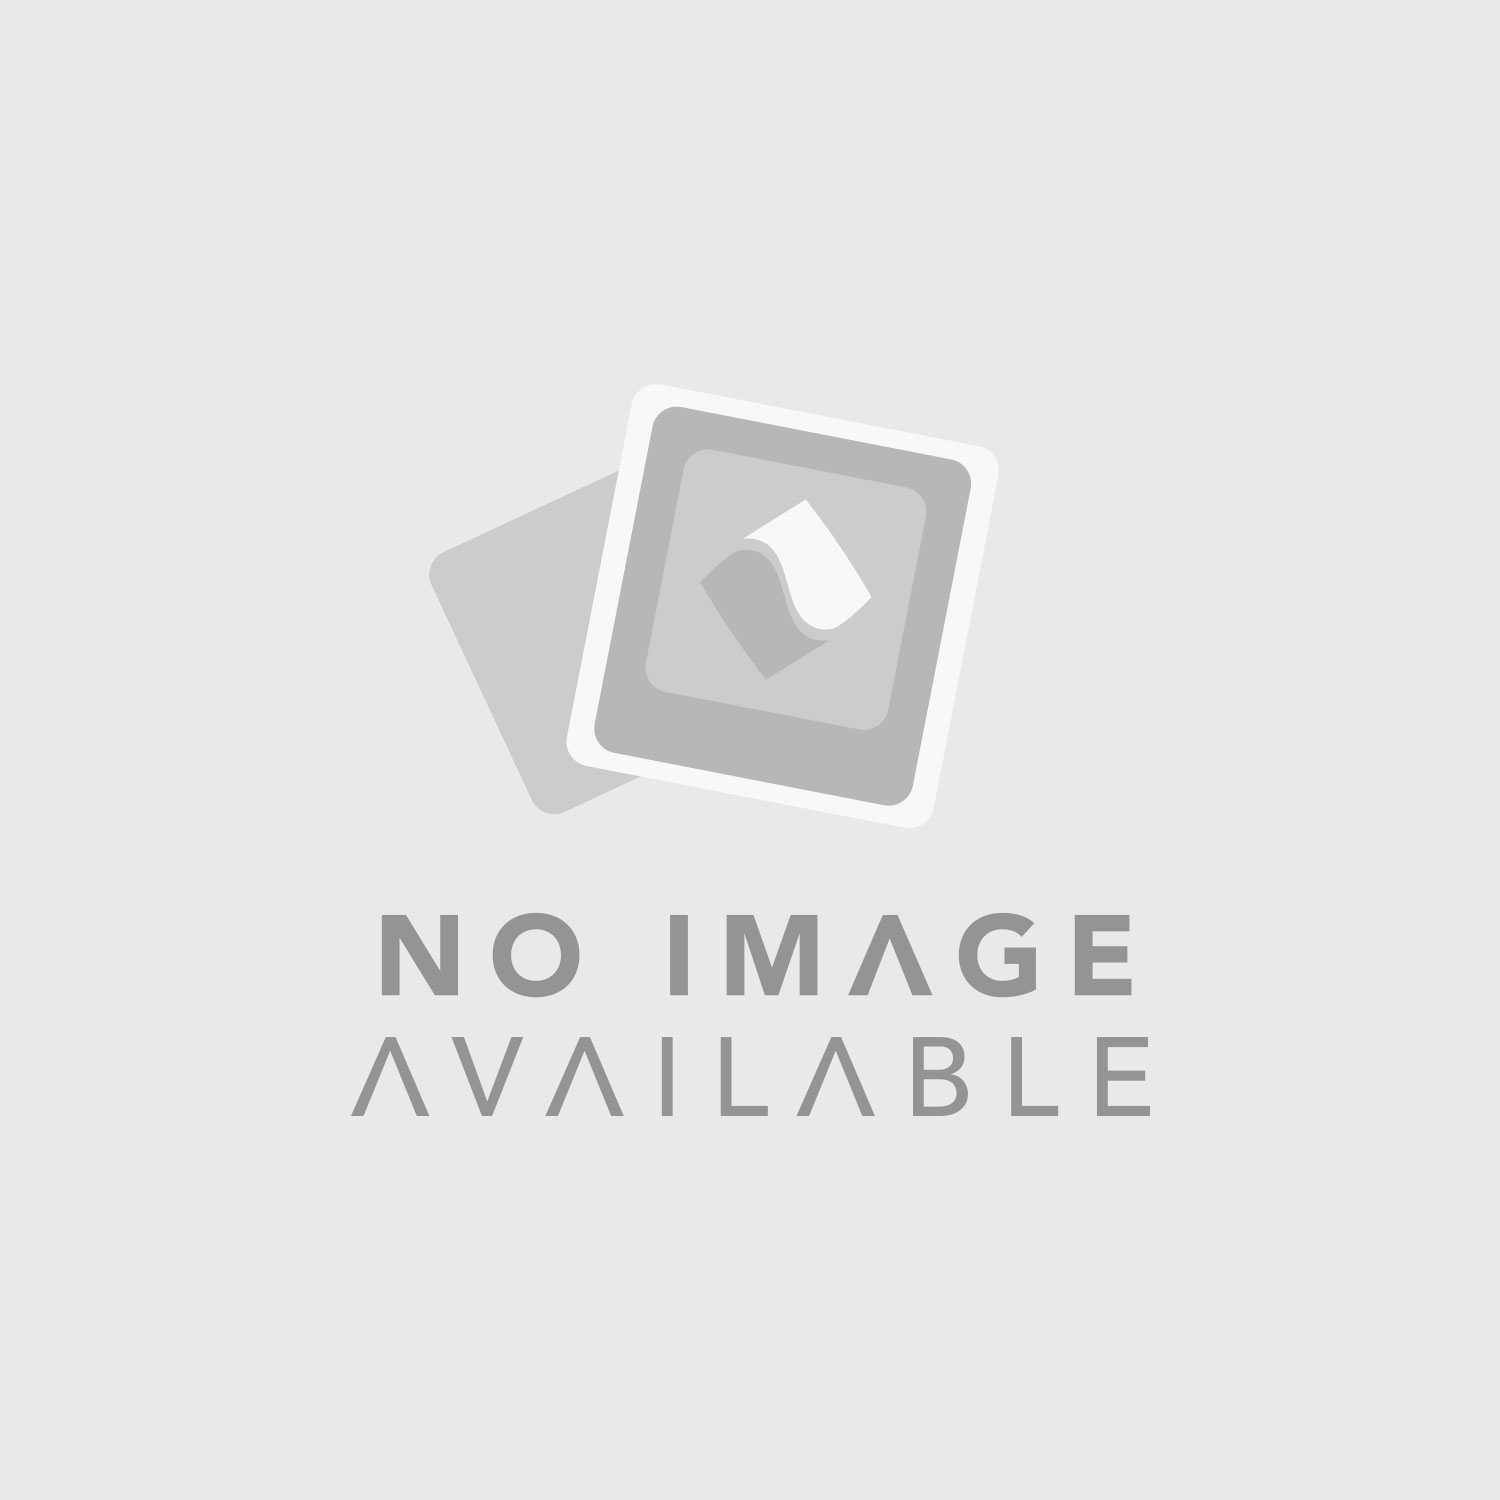 Swisson ISP-6R-DC-TERM DIN Rail Mountable, DMX & RDM Splitter, 6 Outputs, Terminal